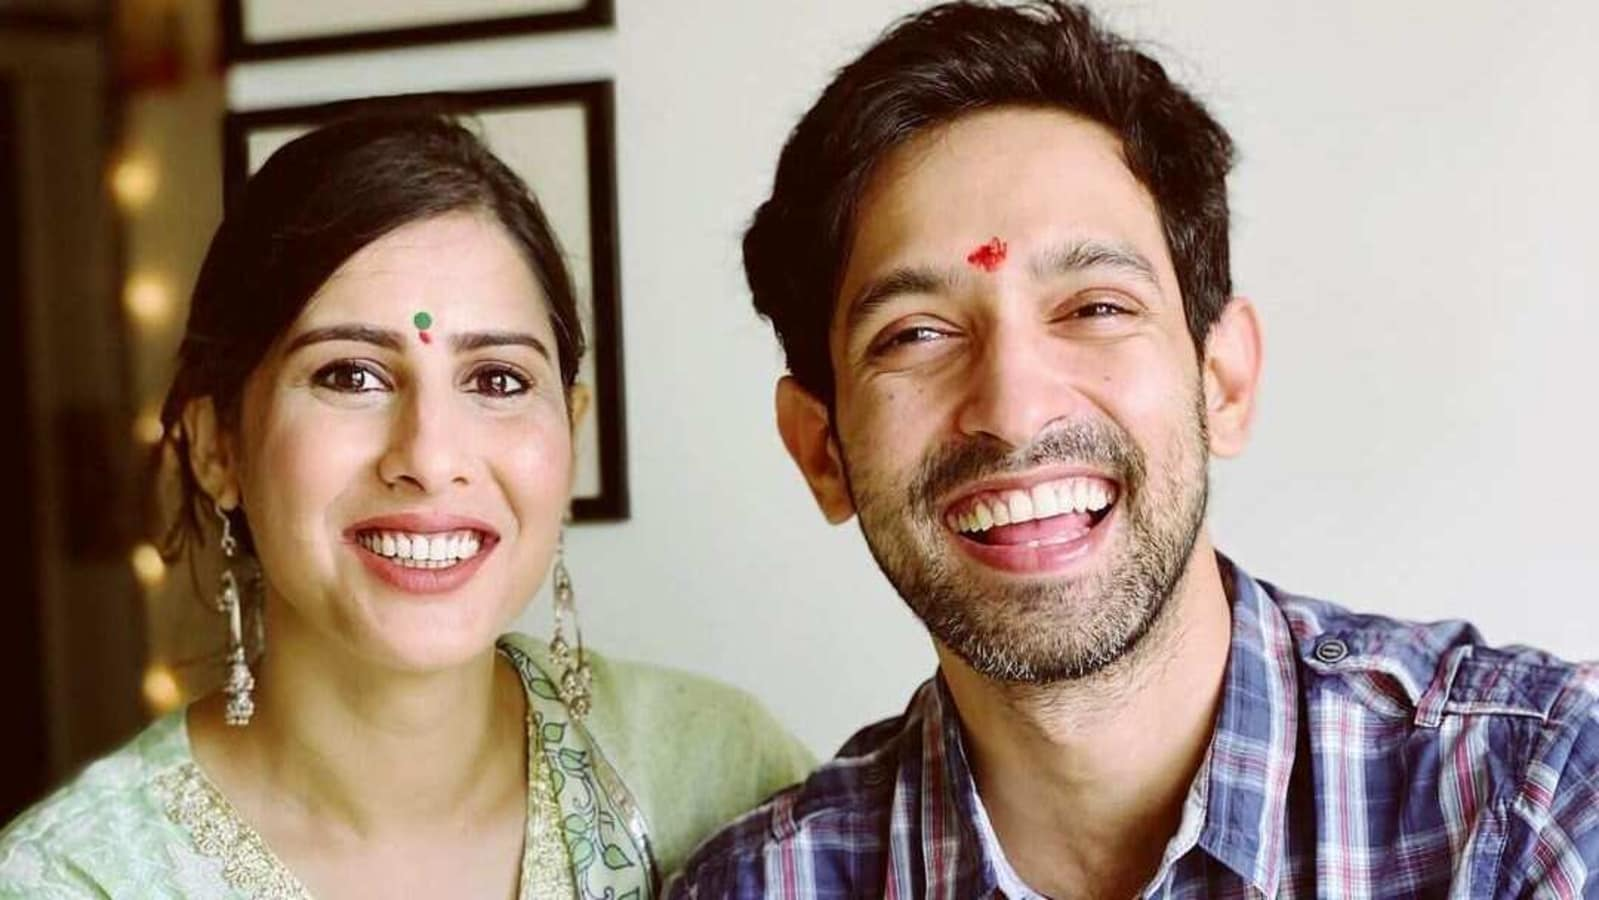 Vikrant Massey says he would have married Sheetal Thakur were it not for the lockdown - Hindustan Times